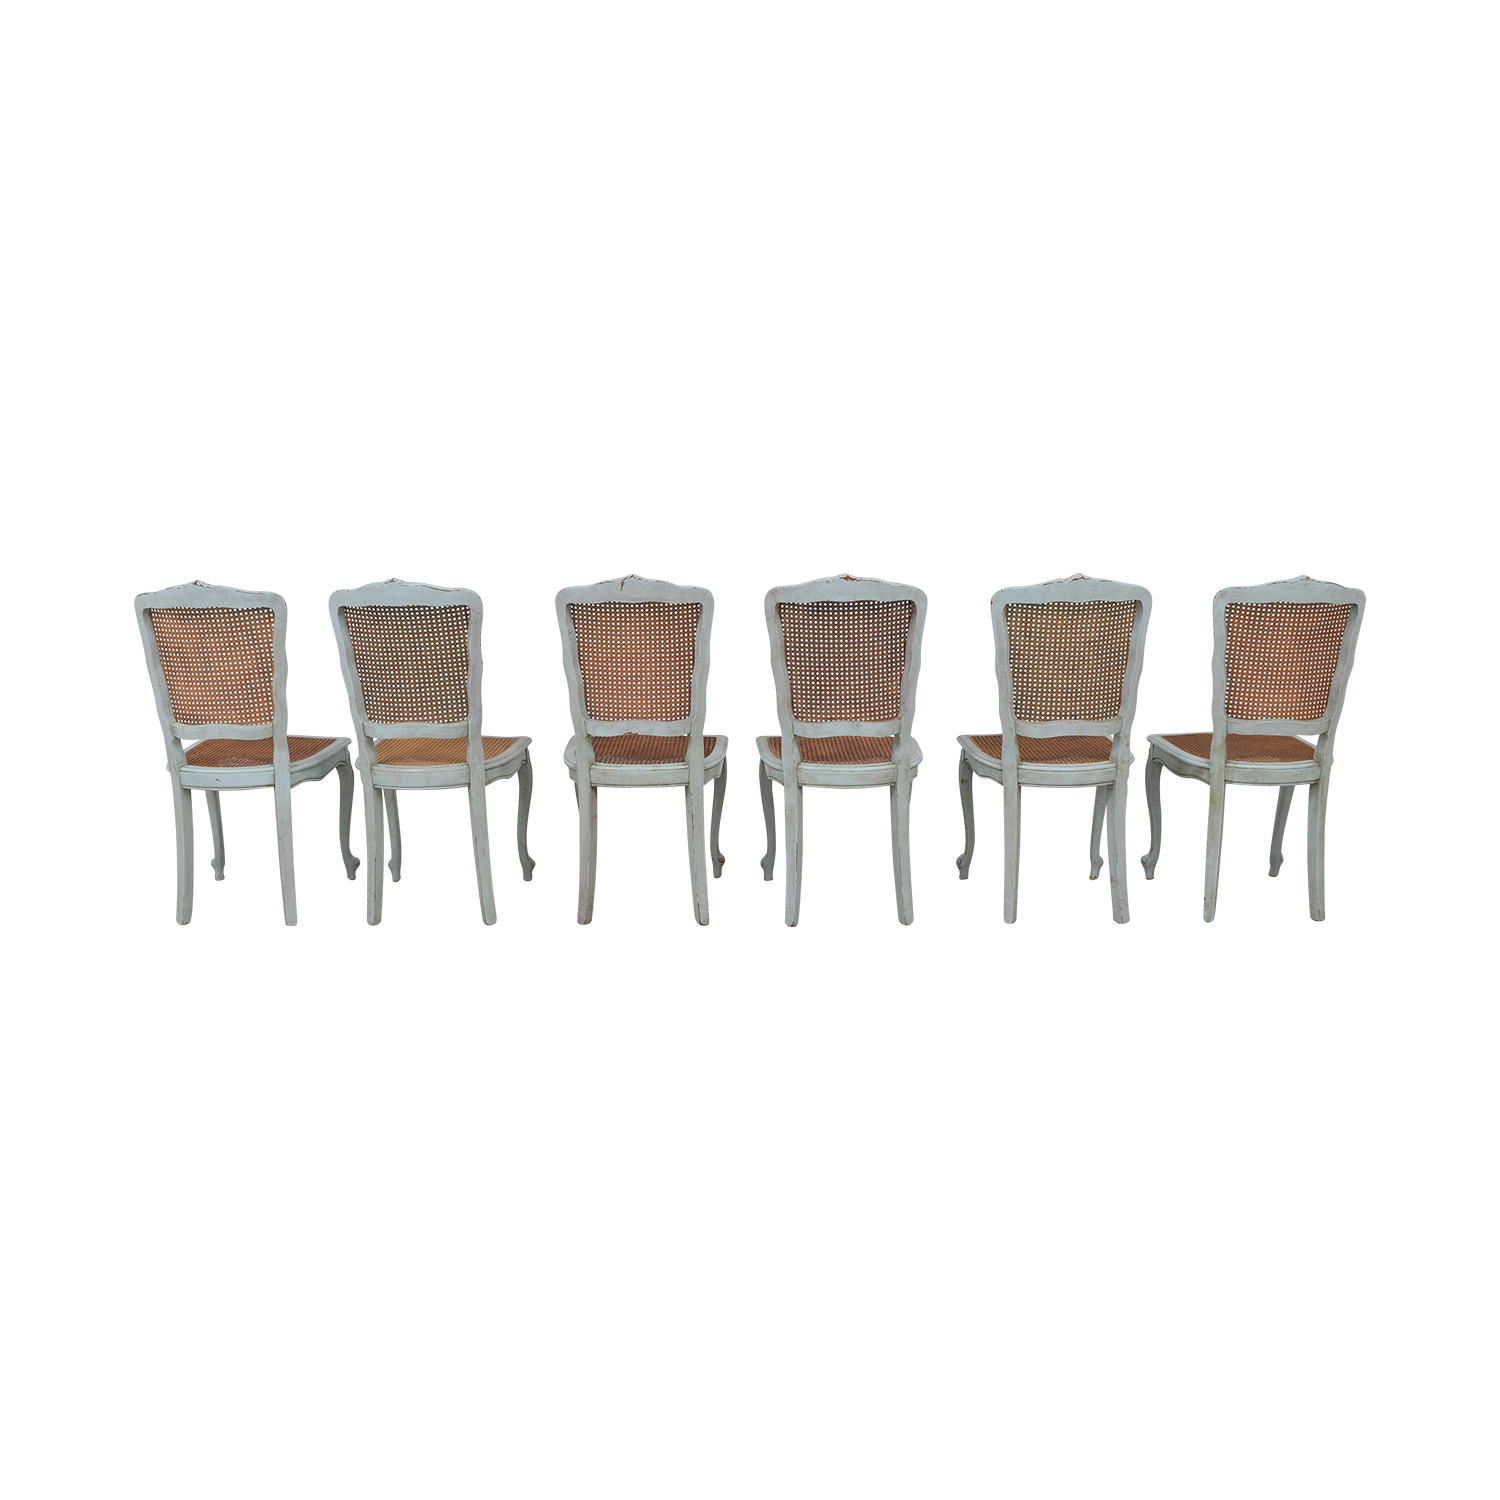 ABC Carpet & Home ABC Carpet & Home French Wicker Chairs Dining Chairs